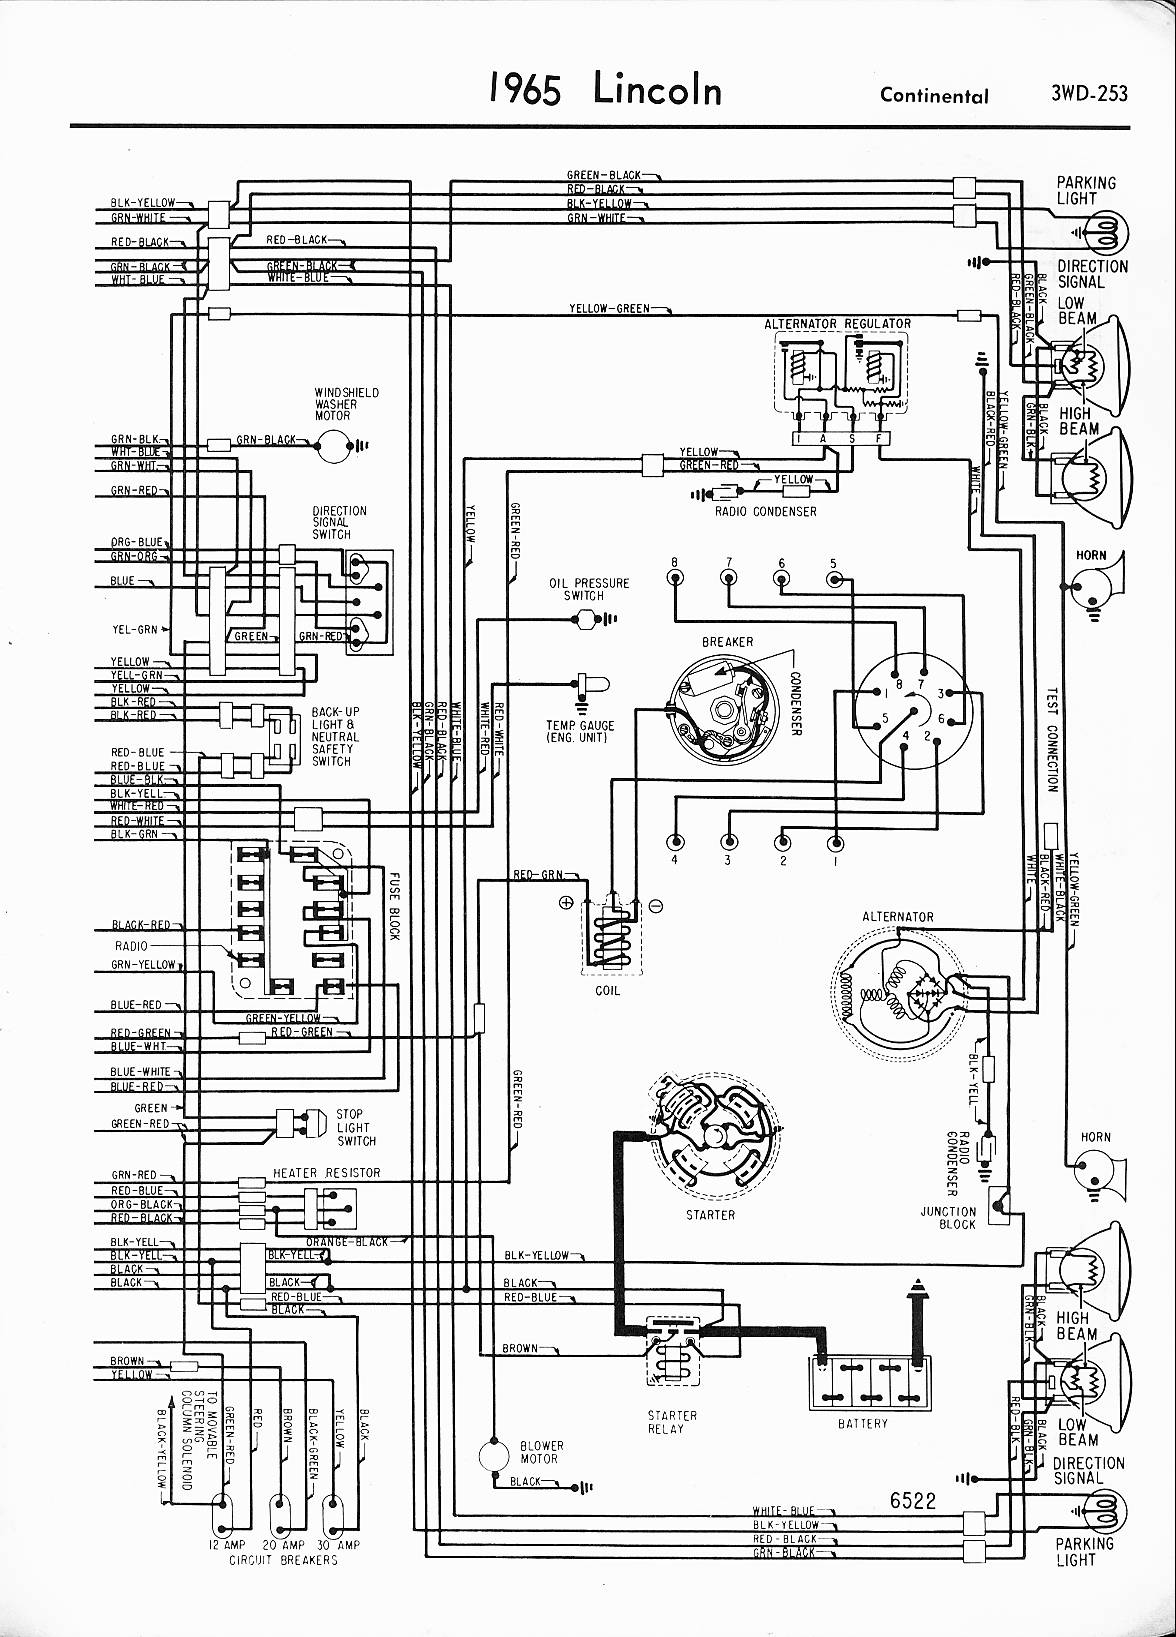 Lincoln Ac Wiring Diagrams Online Manuual Of Diagram Central Air Schematic Electric Motor Todays Rh 11 8 4 1813weddingbarn Com Plug House